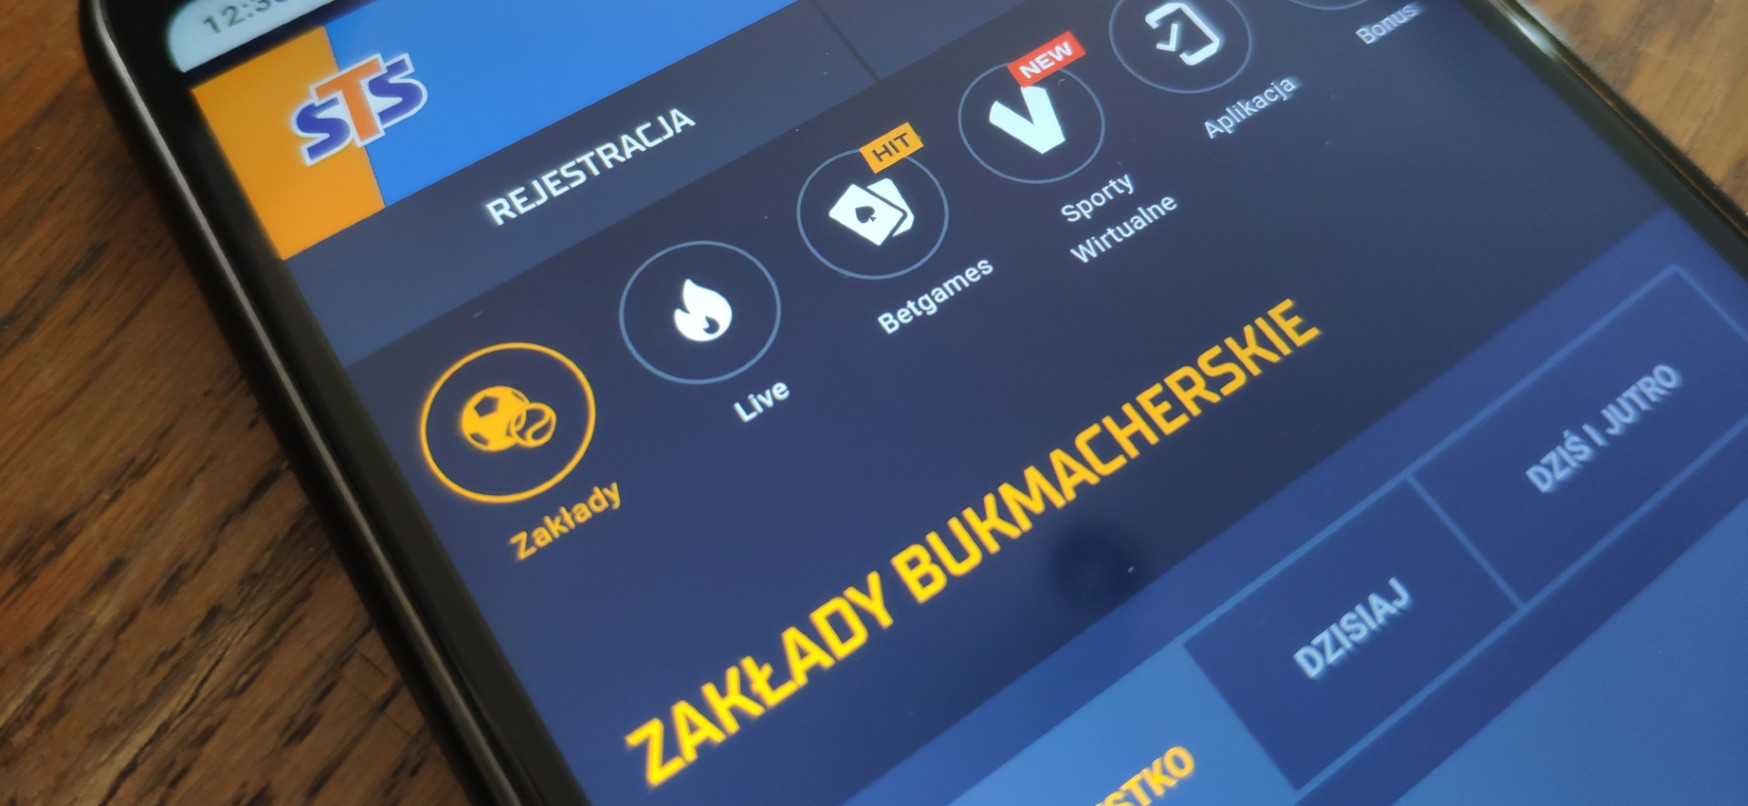 STS shopping in the Czech Republic. The Polish bookmaker wants to facilitate online betting